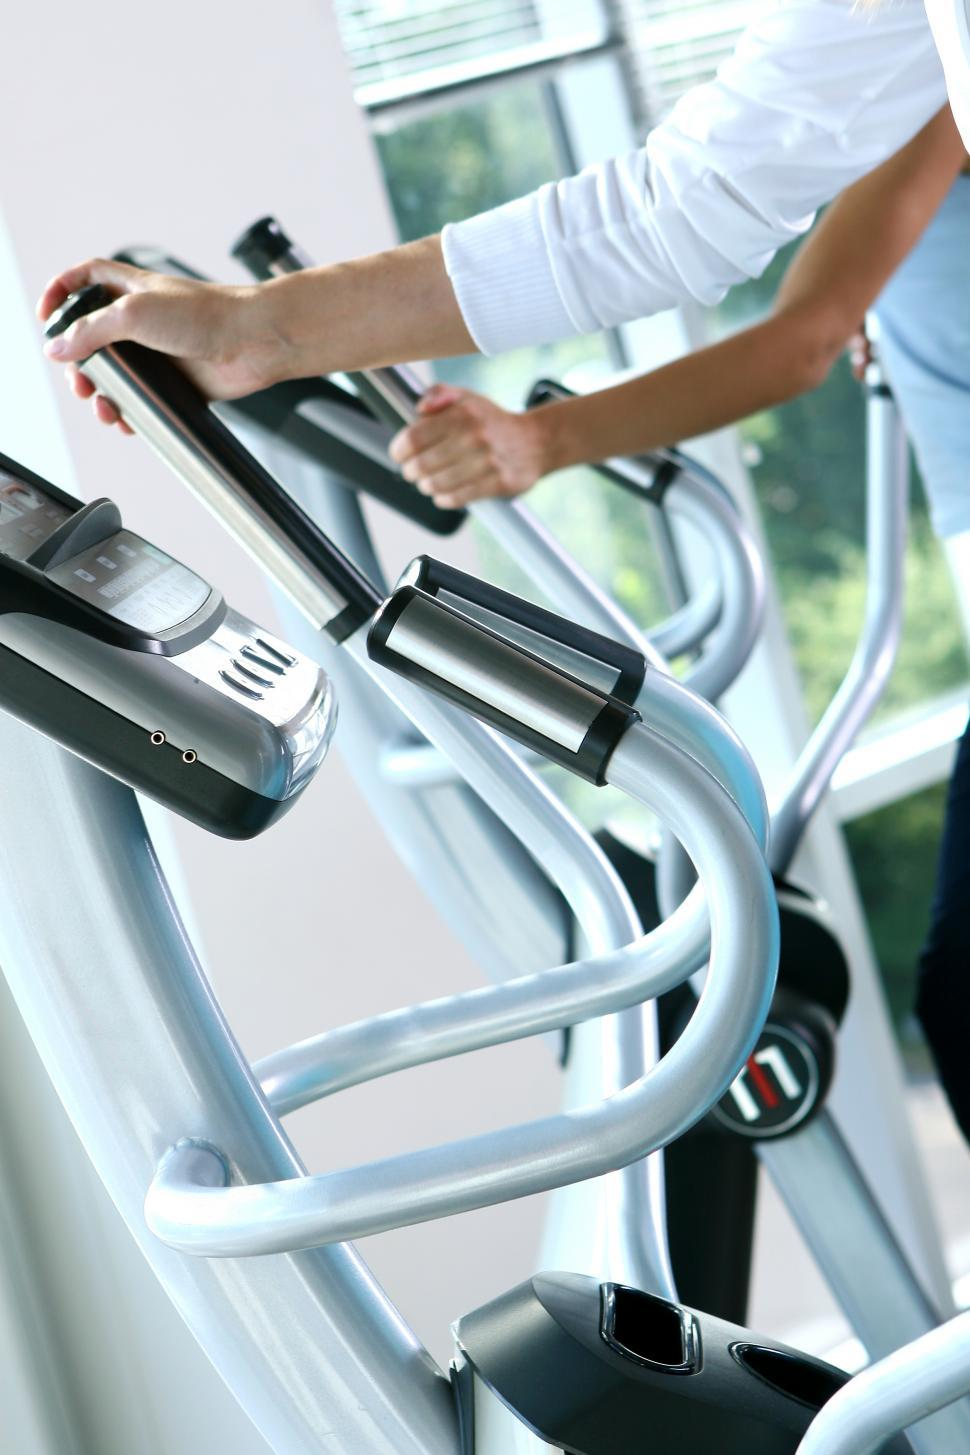 Download Free Stock Photo of Training machines at the gym